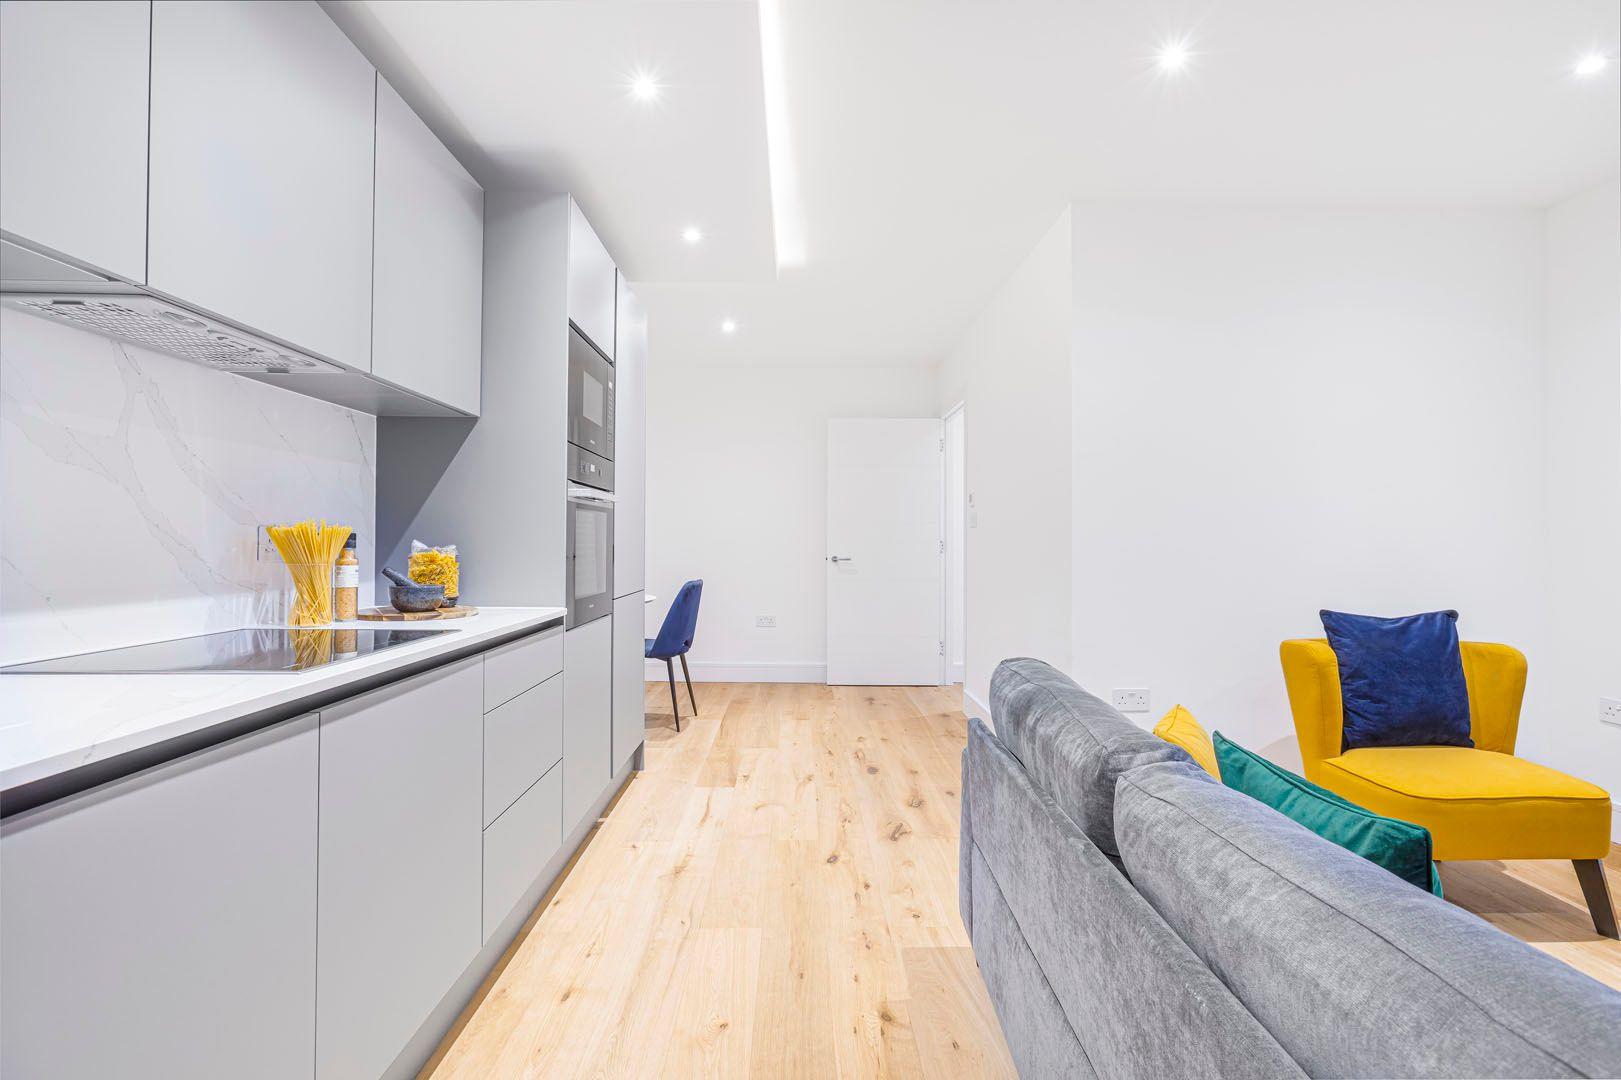 1 Bedroom apartment to rent in London SK3-VH-0071